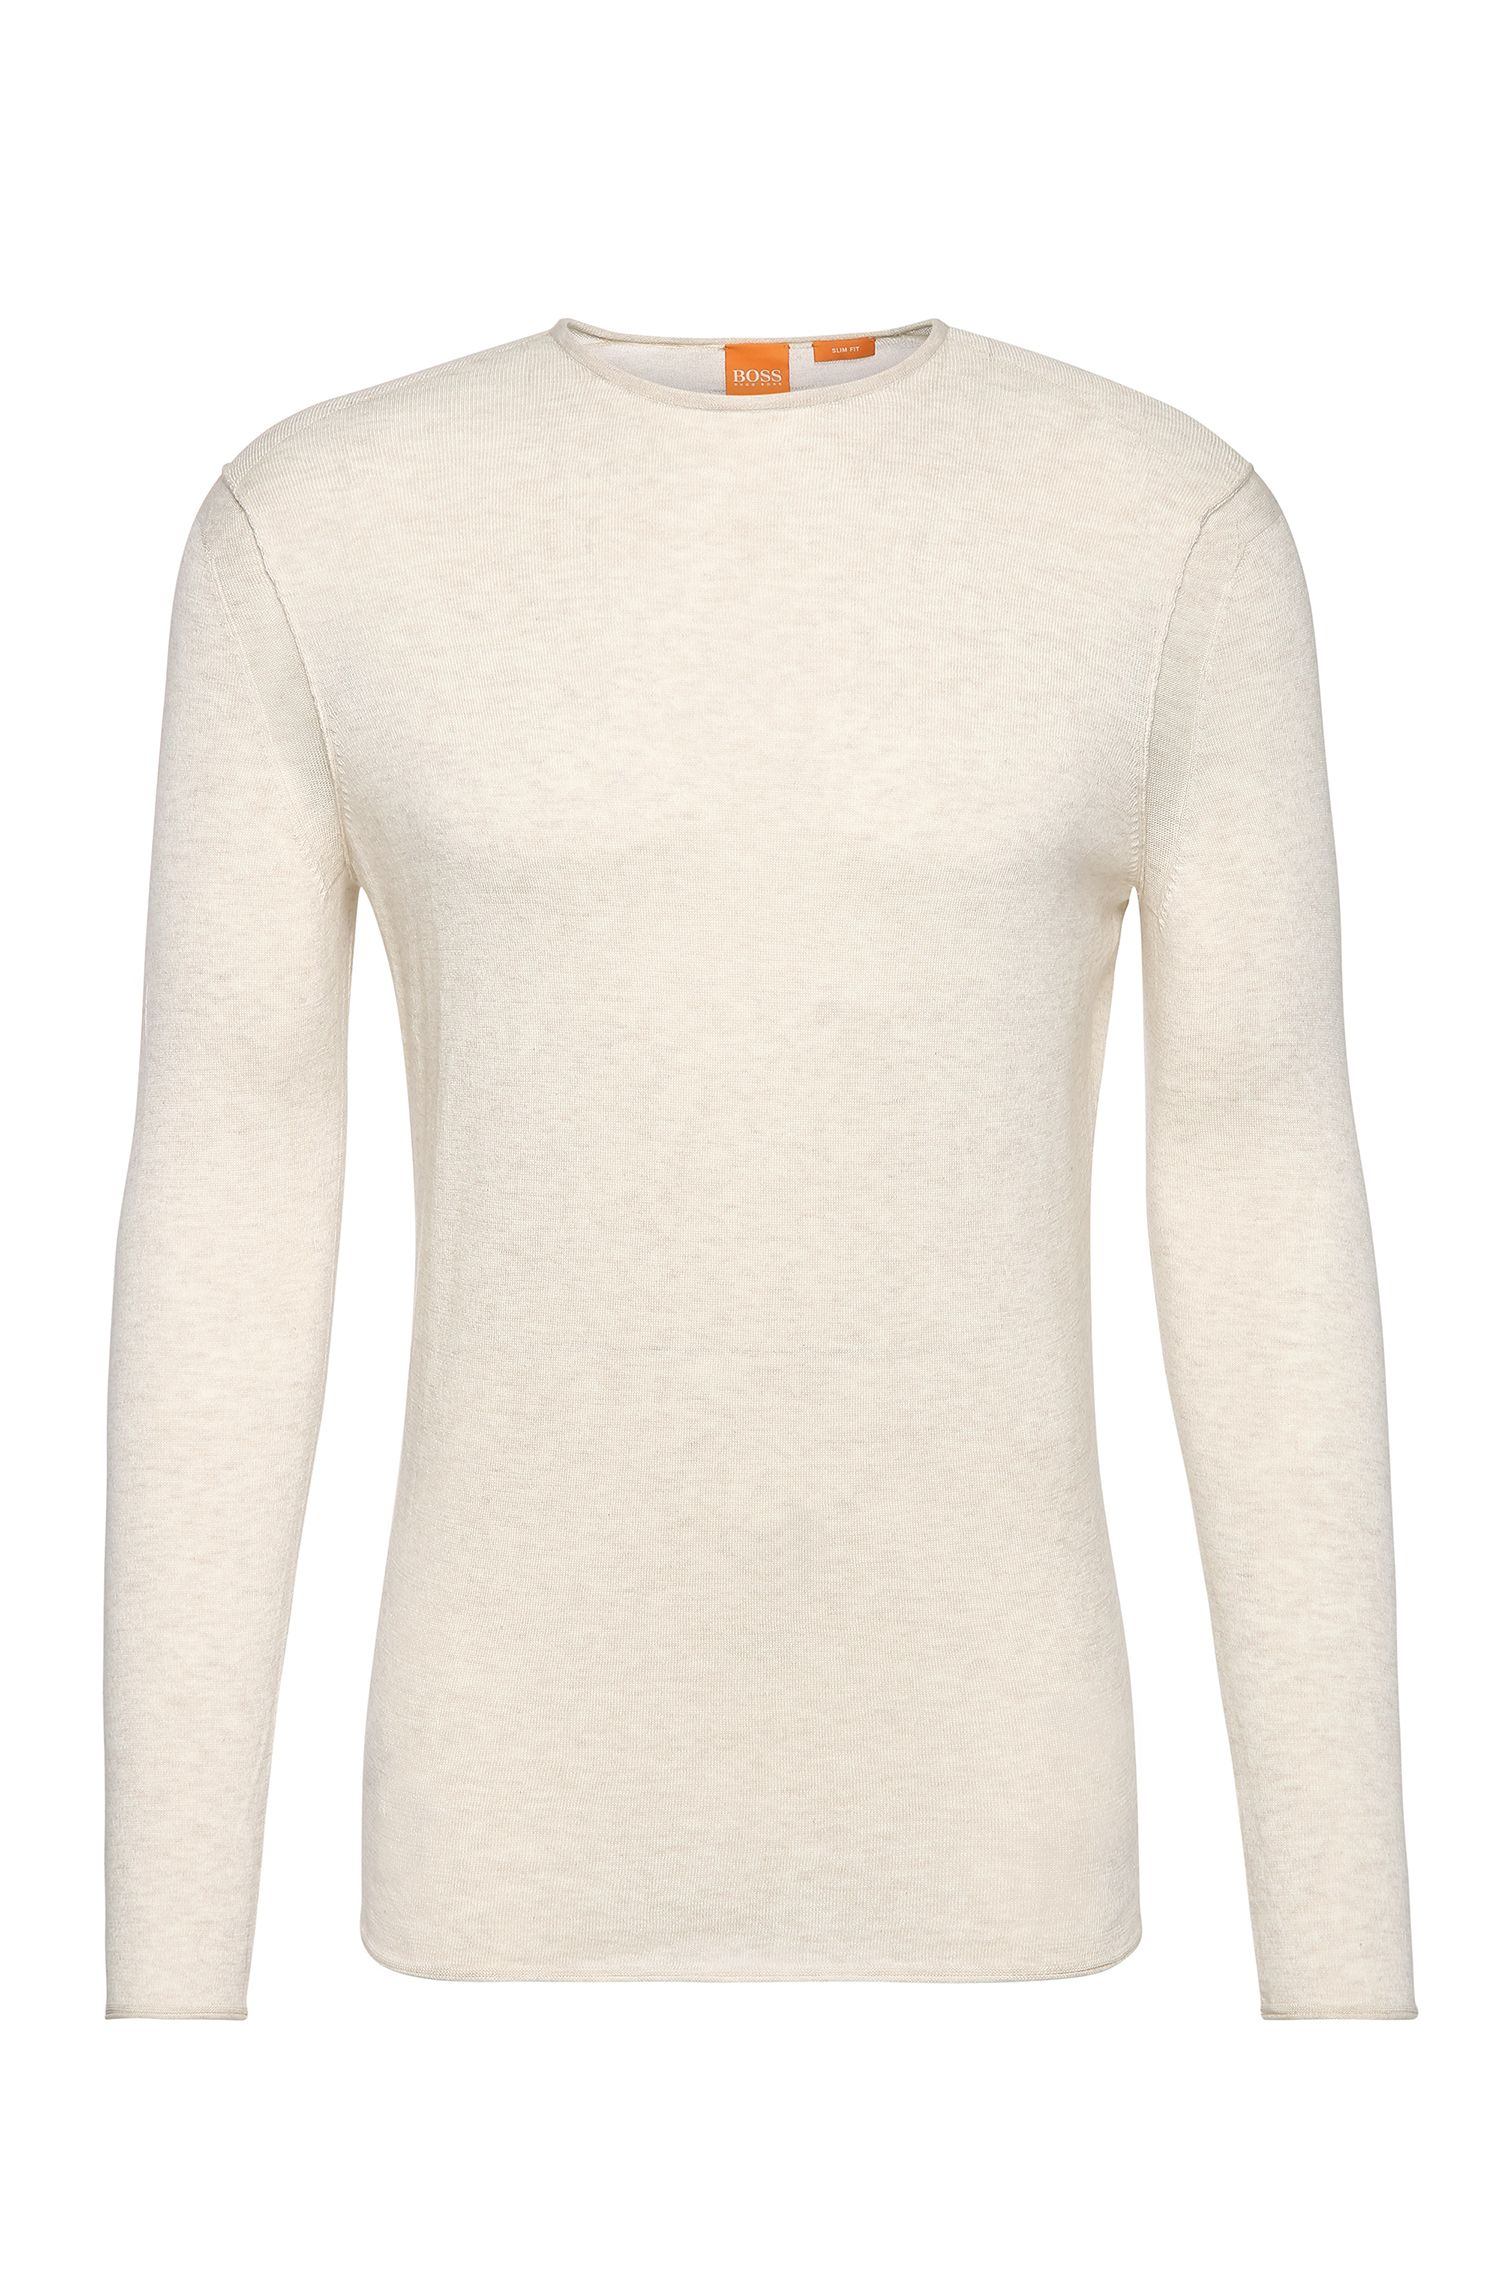 Slim-fit knit sweater in cotton: 'Kwamero'